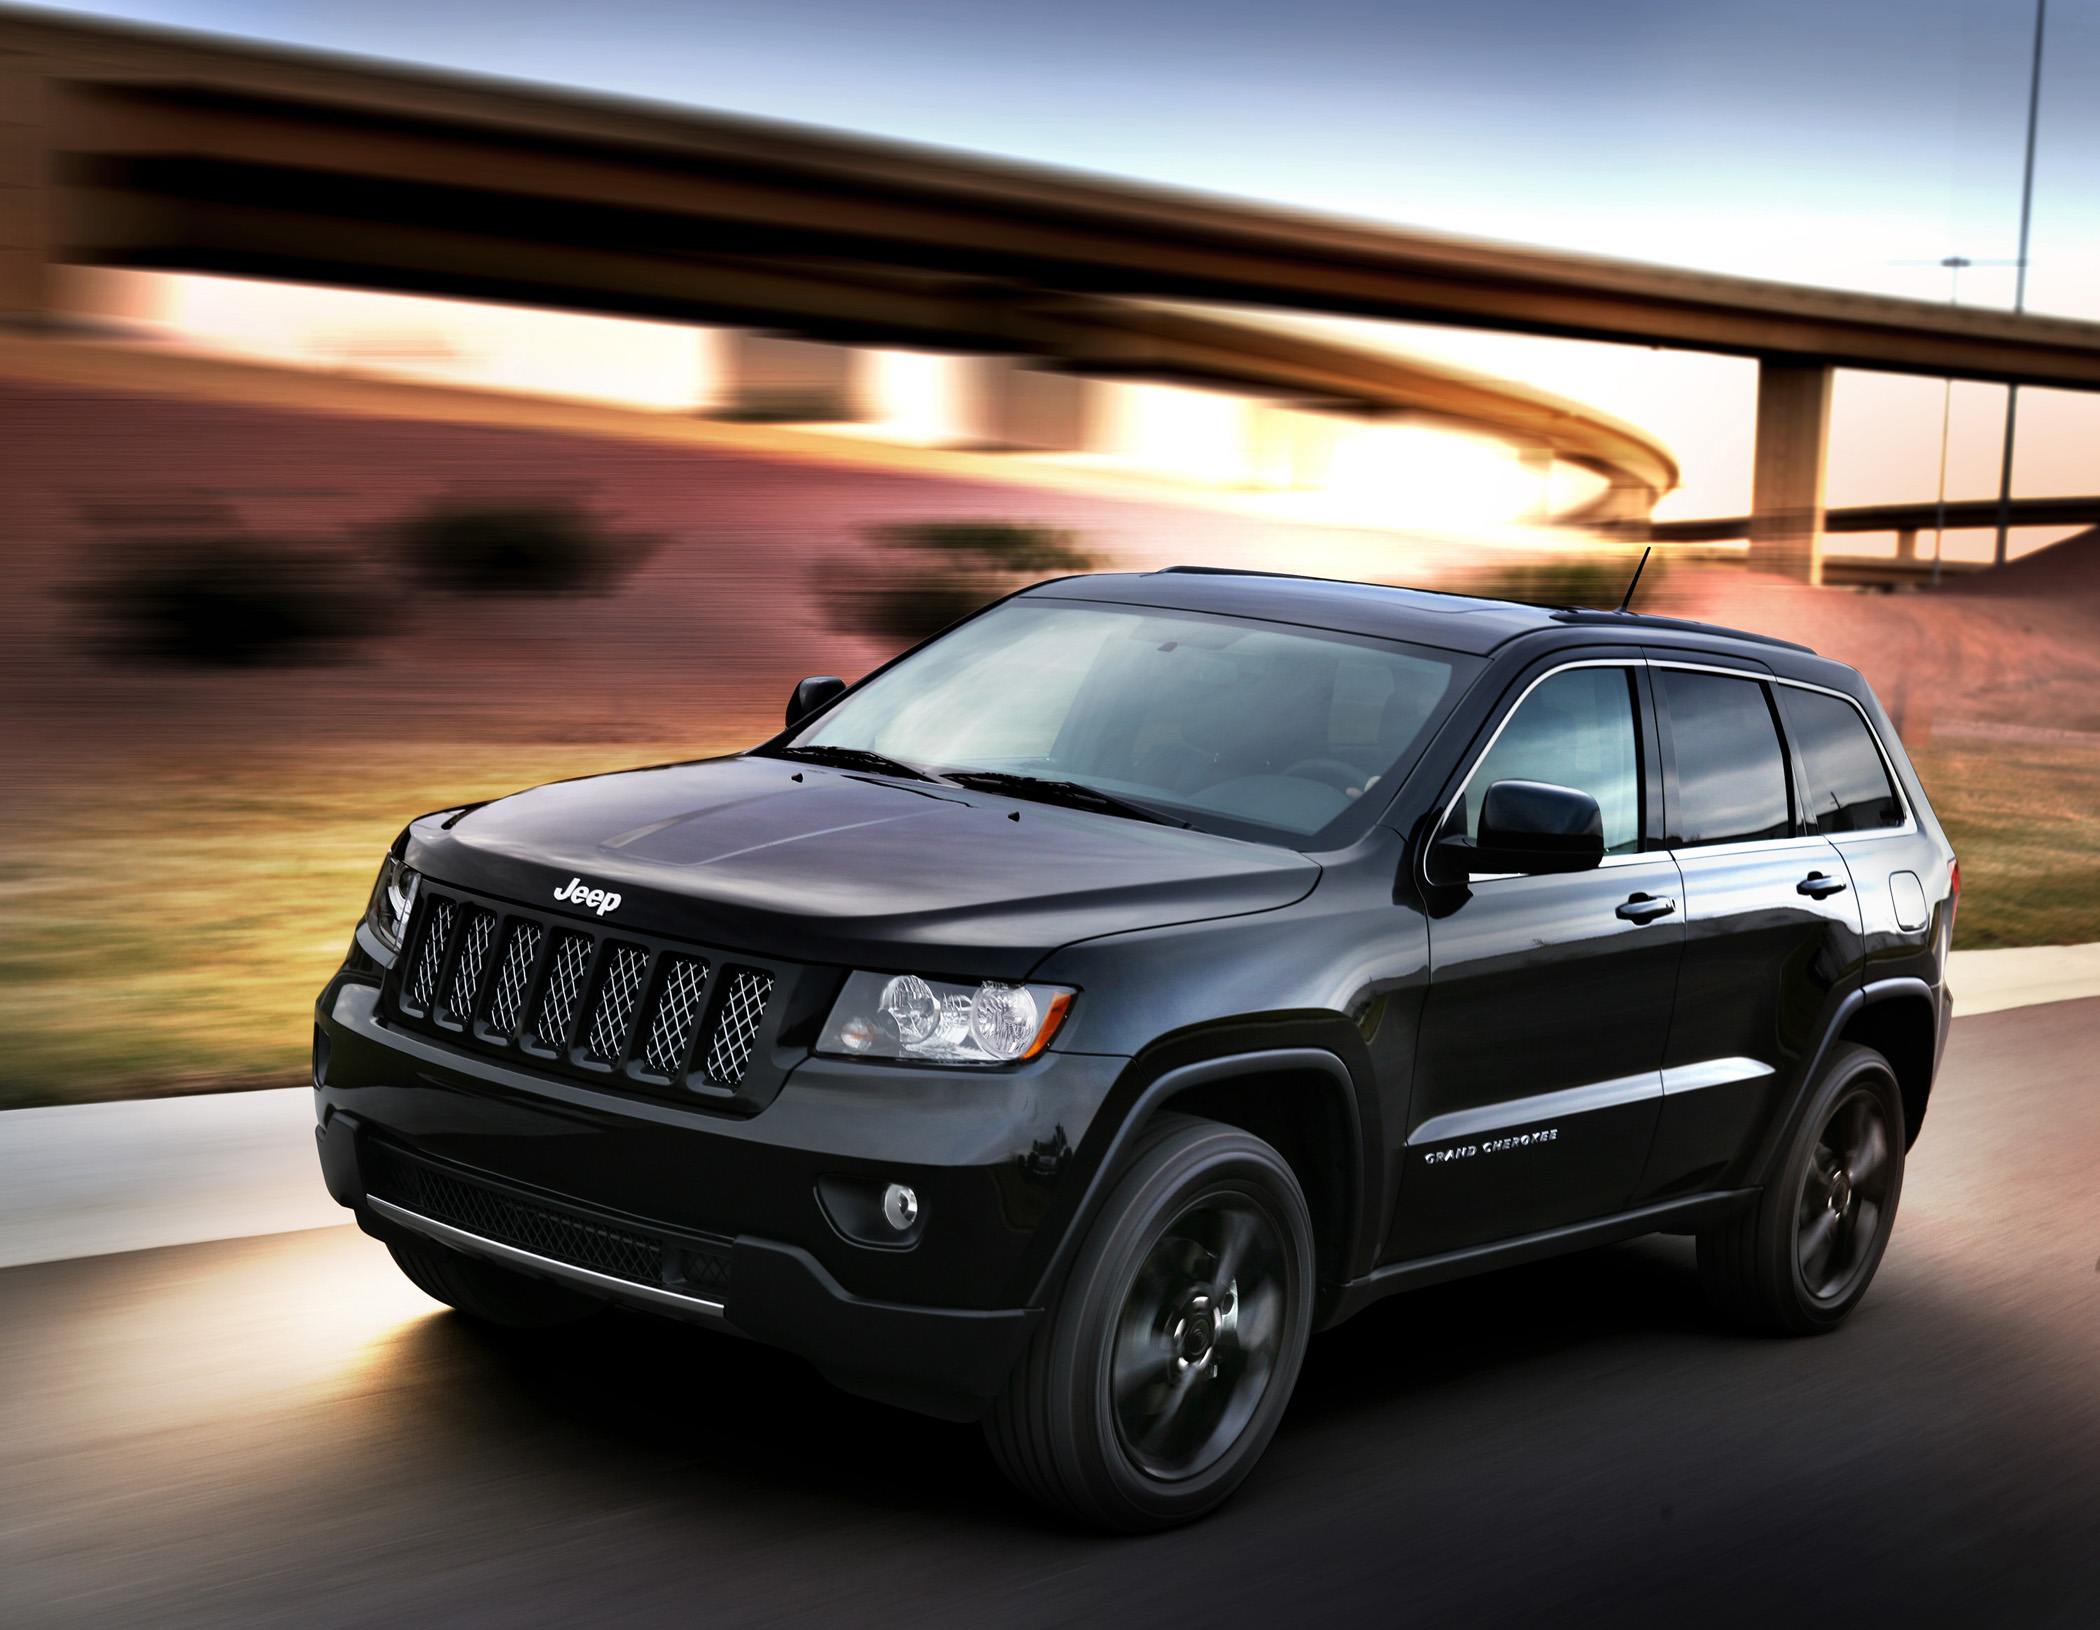 "Manufacturer photo: The Grand Cherokee Altitude edition combines a variety of exterior design changes to create a unique model with an aggressive chrome and ""blacked-out"" look"